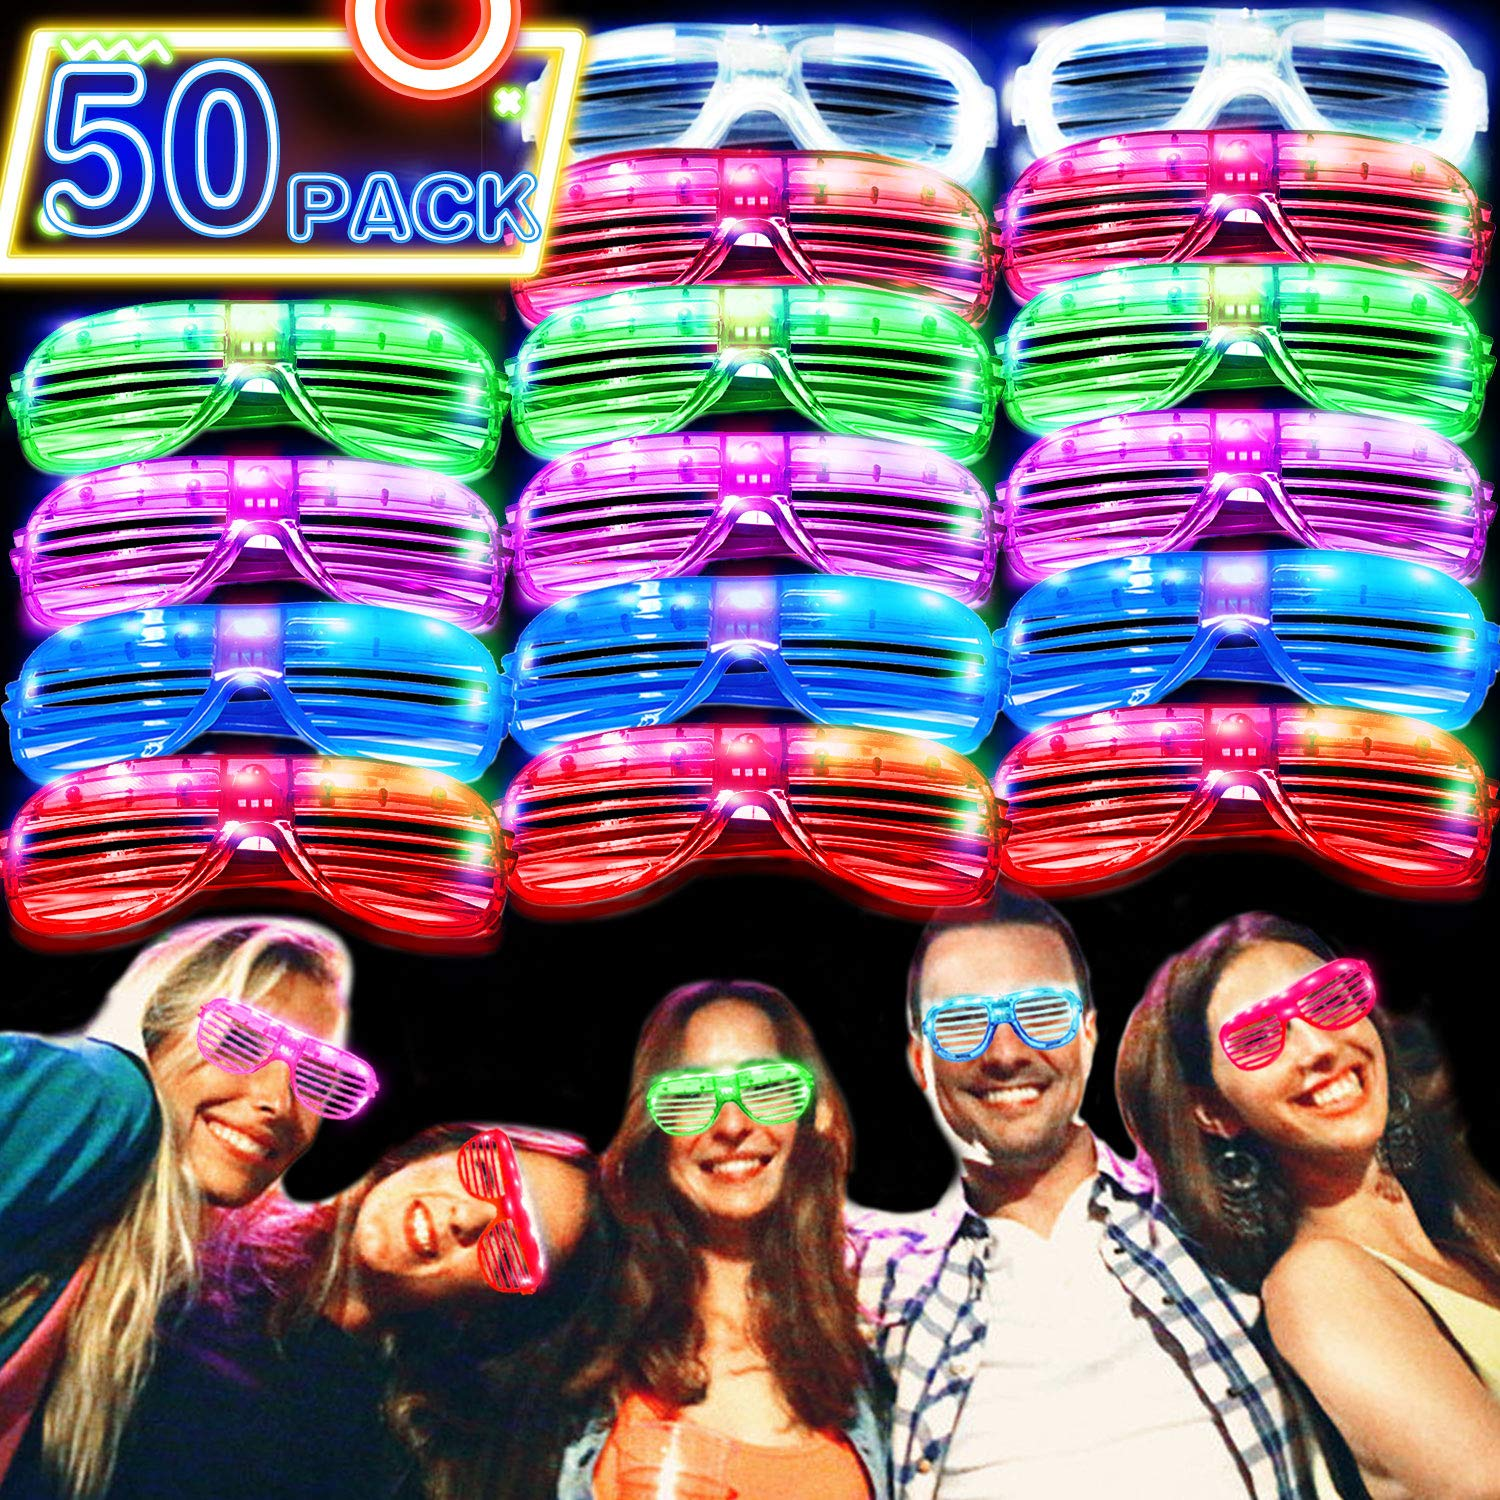 50 Pack LED Glasses [Super Set] Flashing Glasses 6 Color Light Up Plastic Shutter Shades Glasses 2019 Glow in The Dark Party Supplies Led Sunglasses for Adults Kids Rave Neon Glasses Party Favor